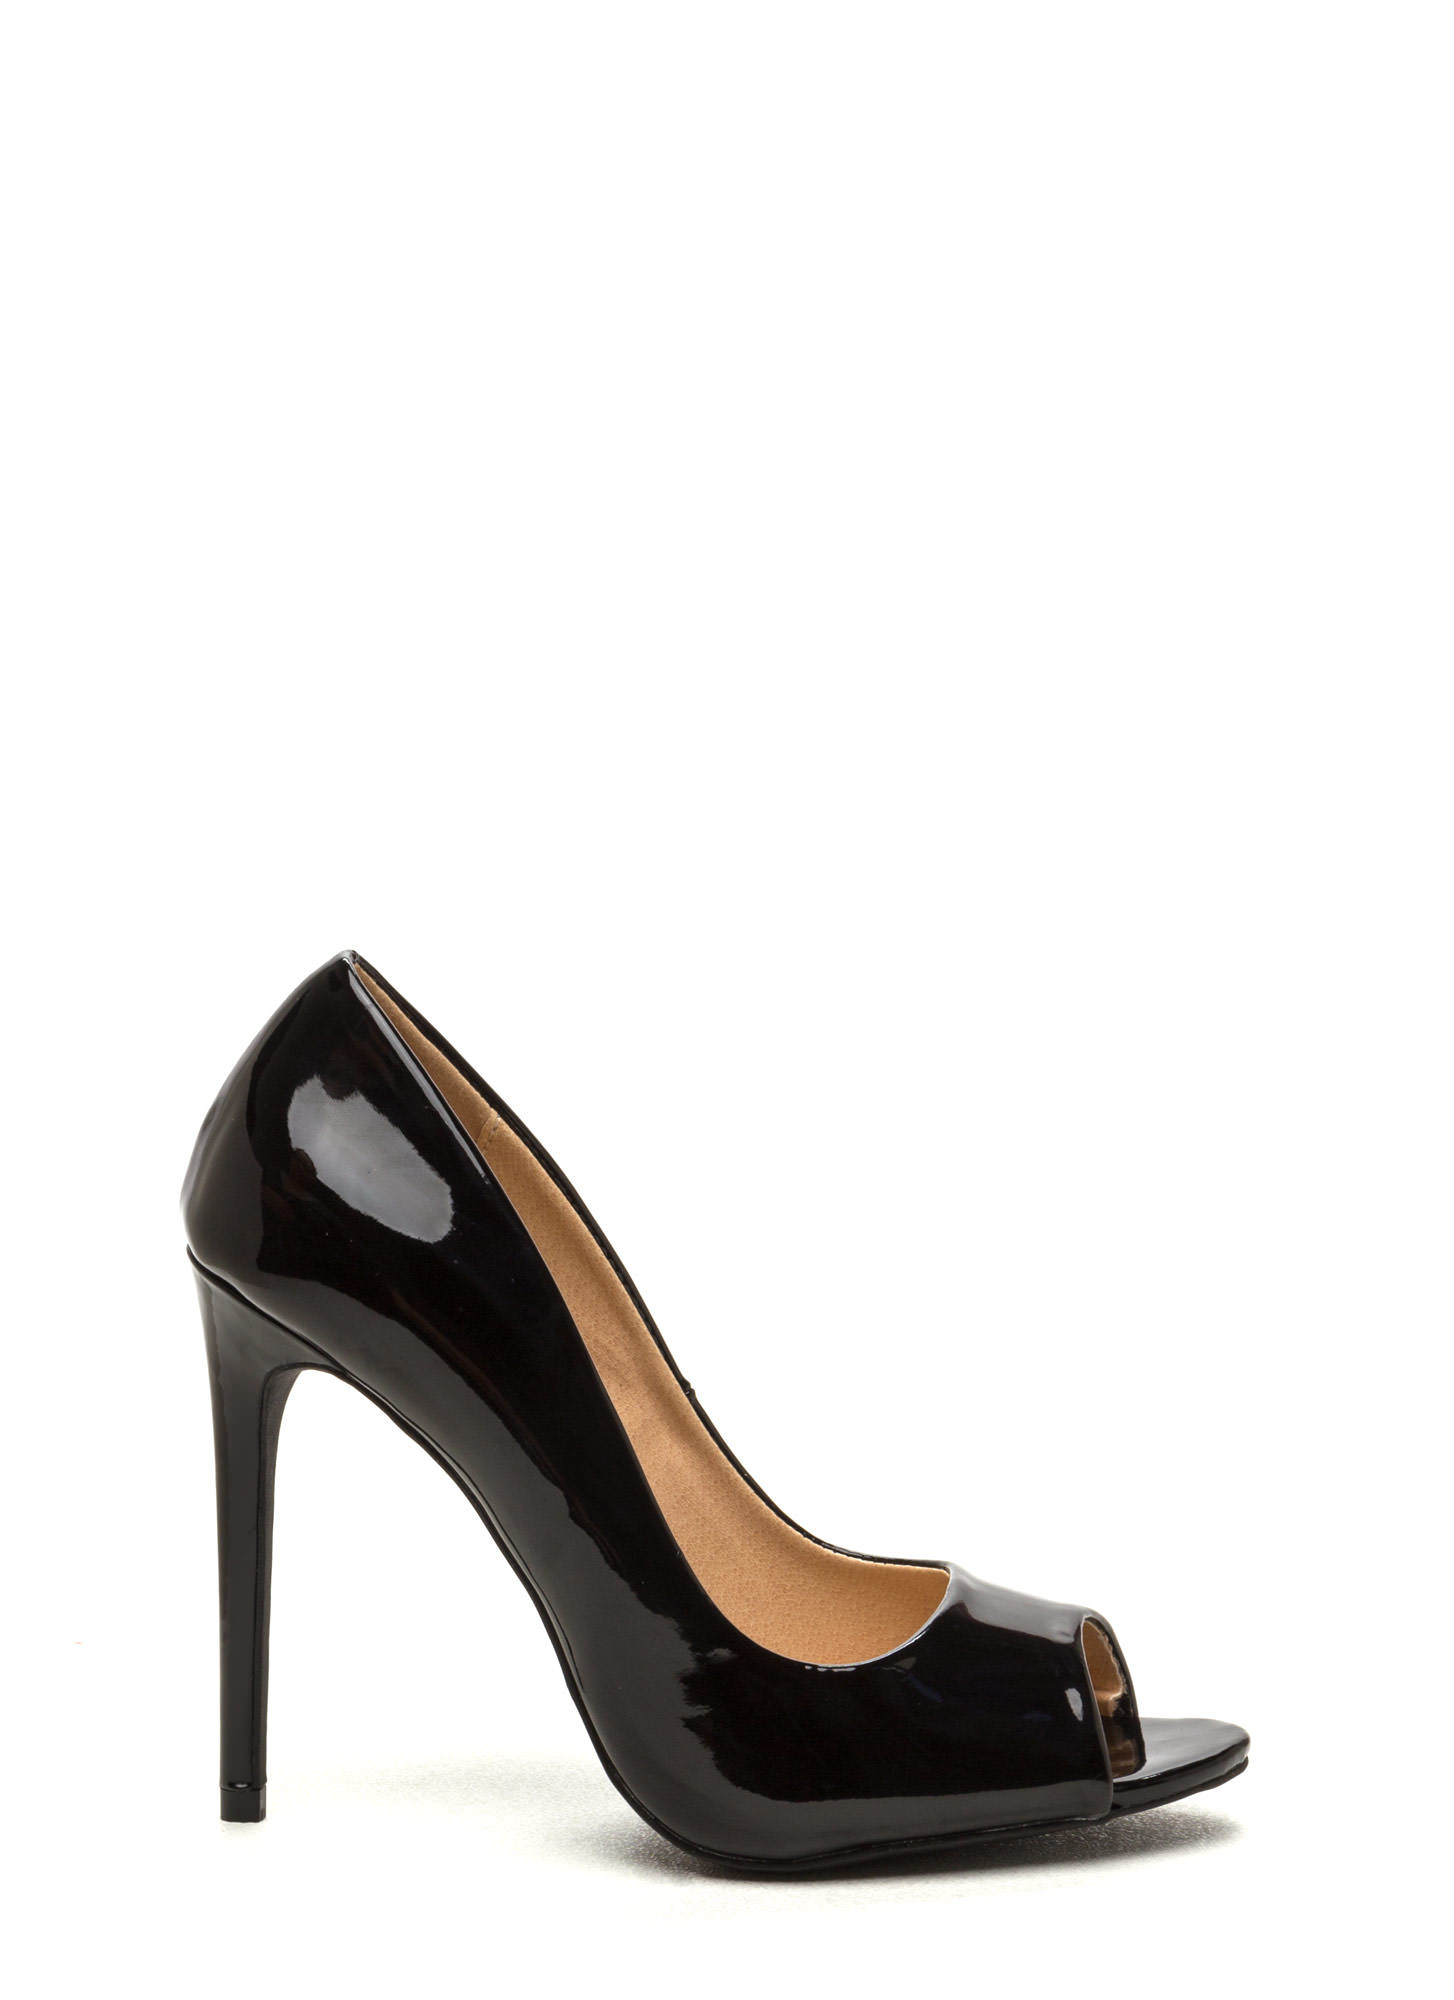 Peep Show Faux Patent Leather Pumps BLACK